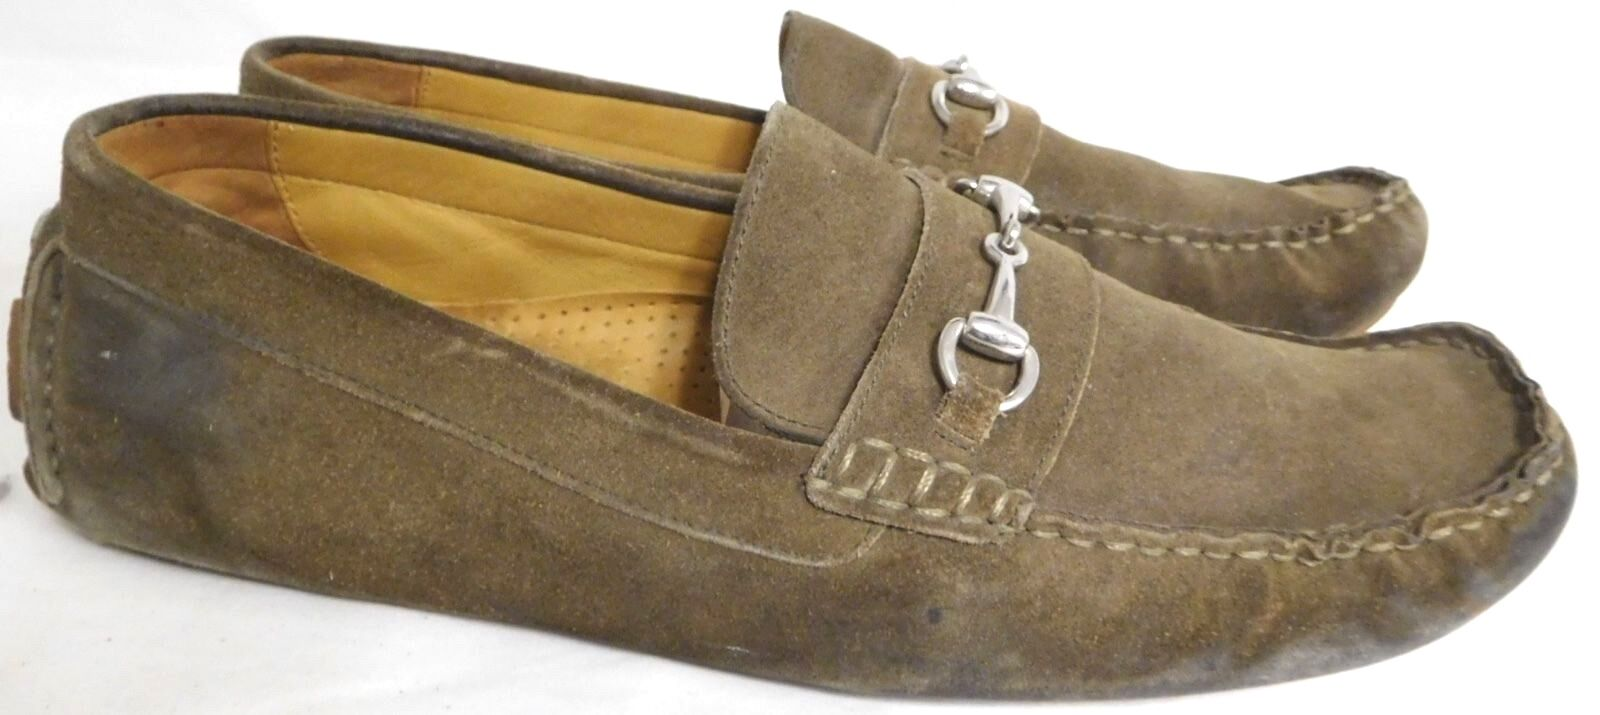 COLE HAAN LIGHT BROWN SUEDE LOAFERS MOCCASINS MENS SIZE 12 M GUC